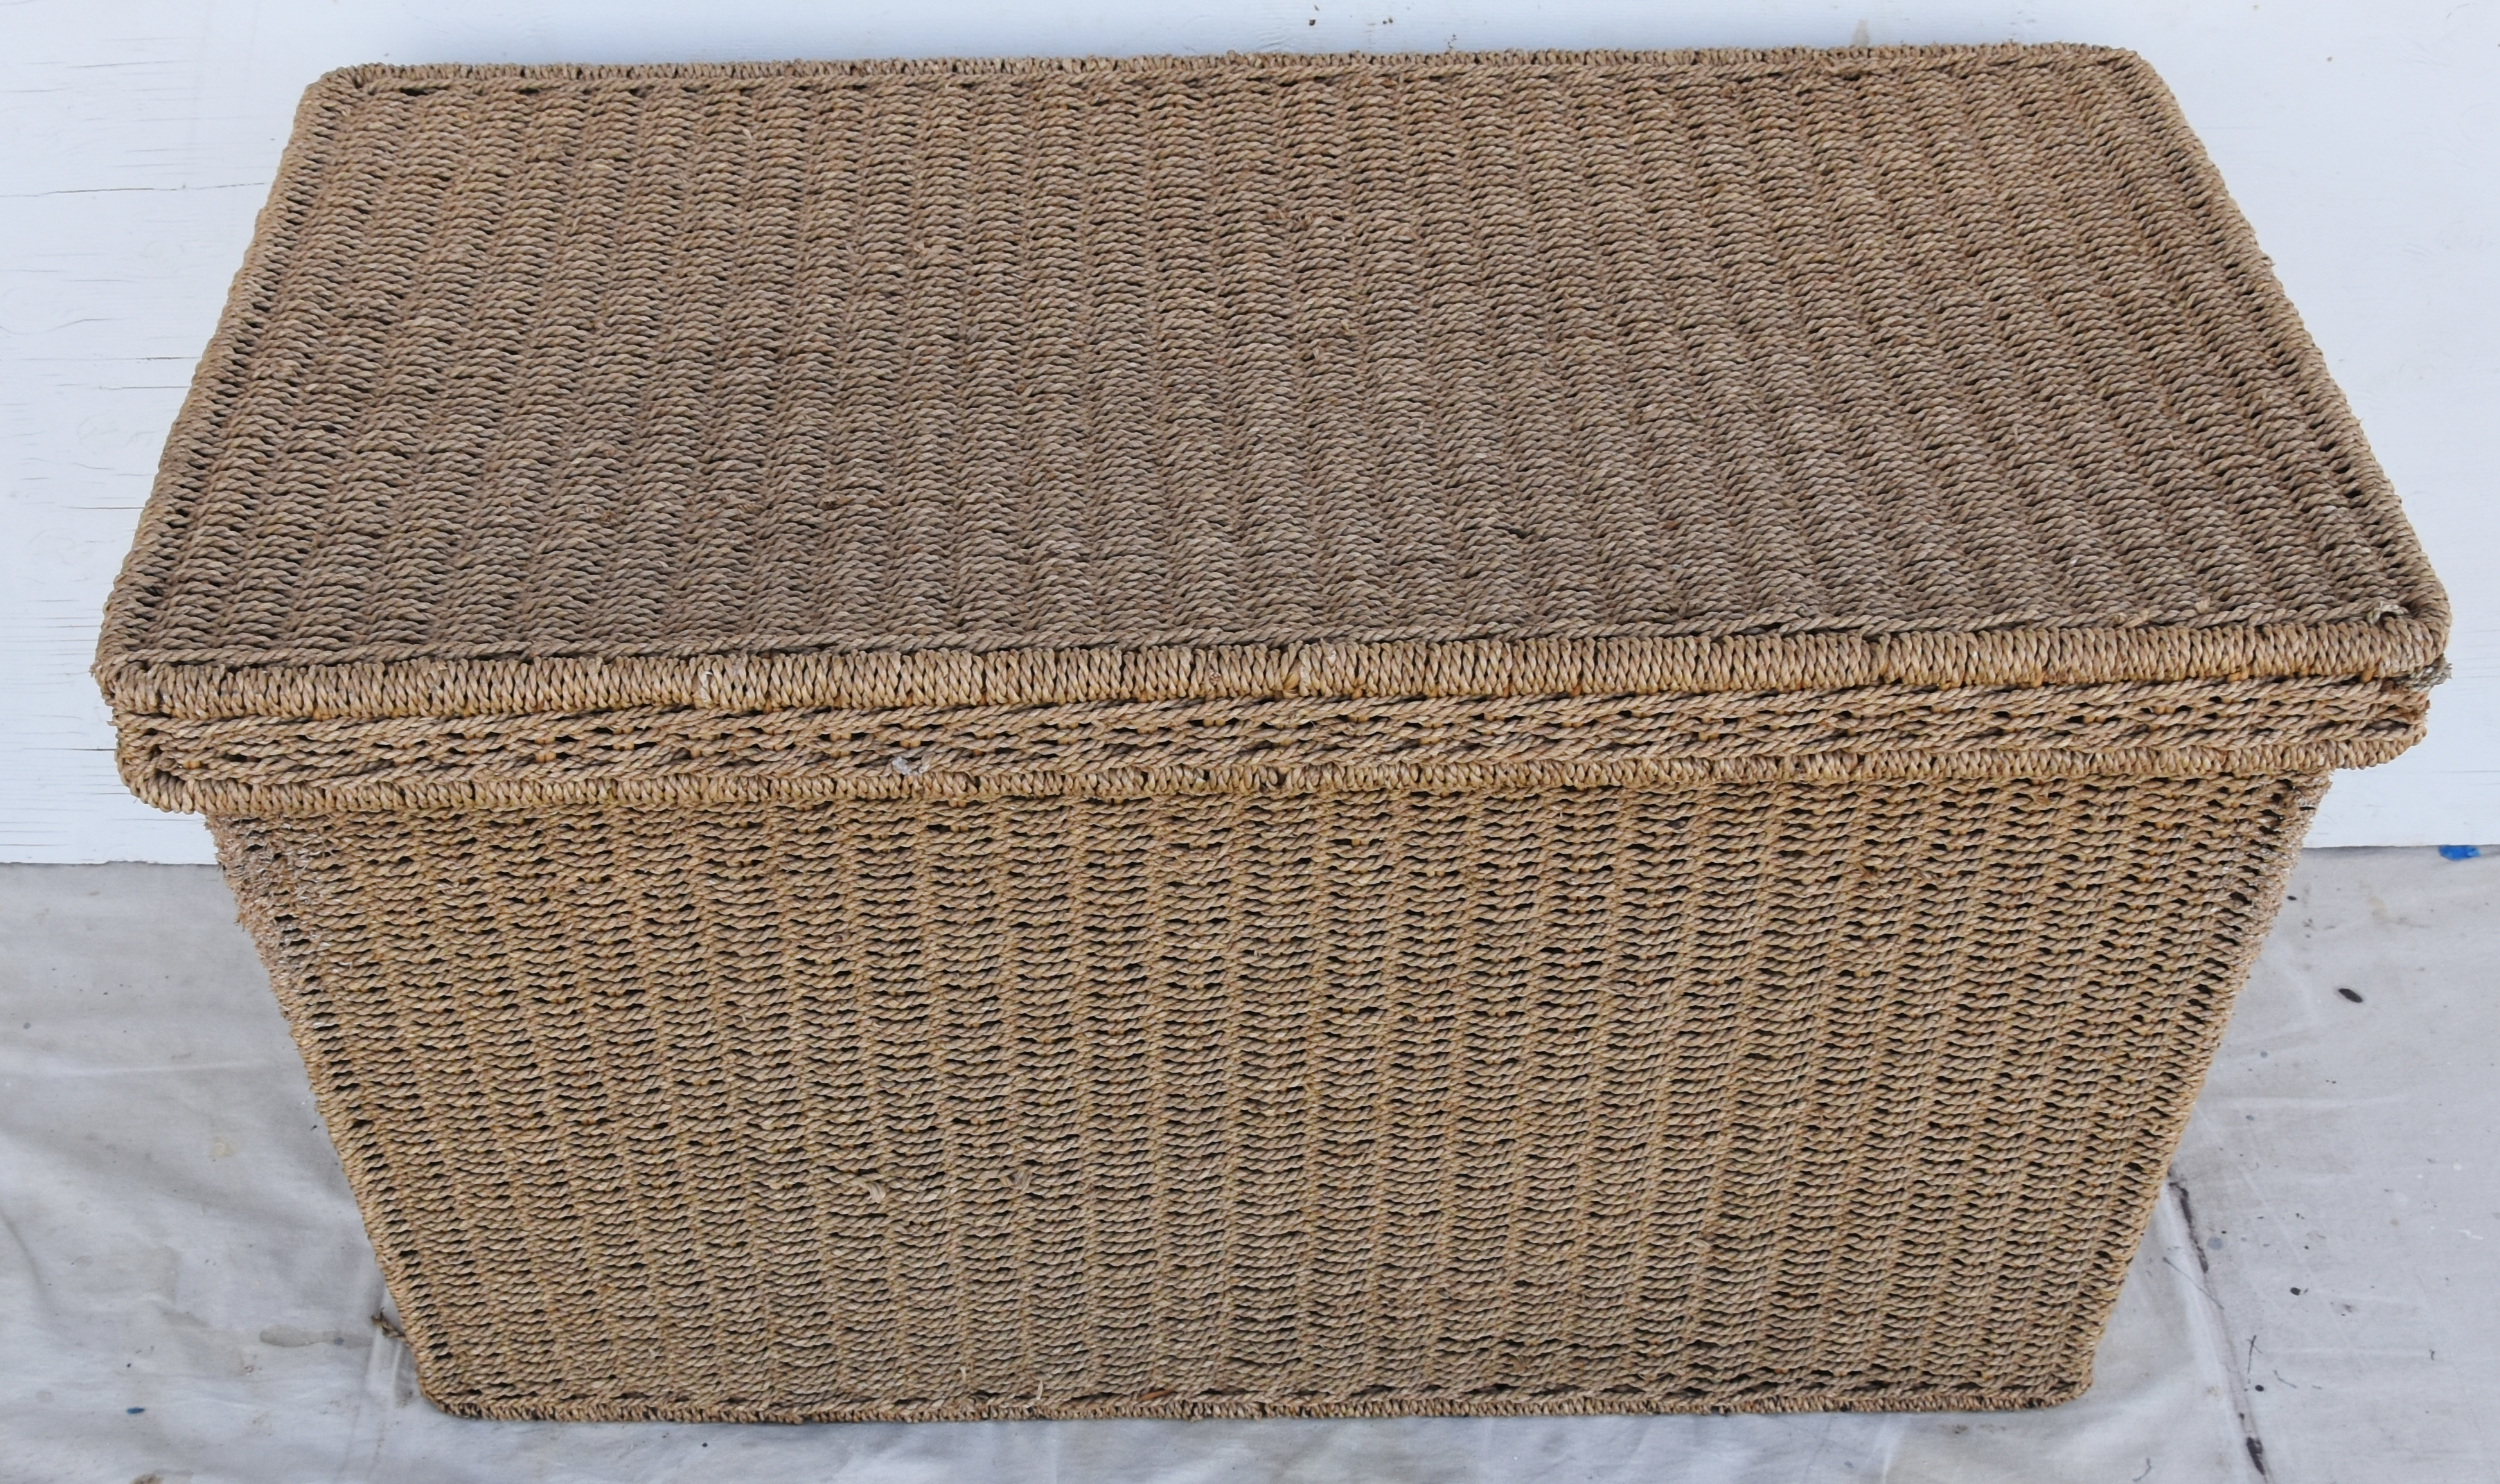 Vintage Hand Woven Seagrass Trunk Coffee Table With Removable Lid. Woven  Natural Seagrass Over